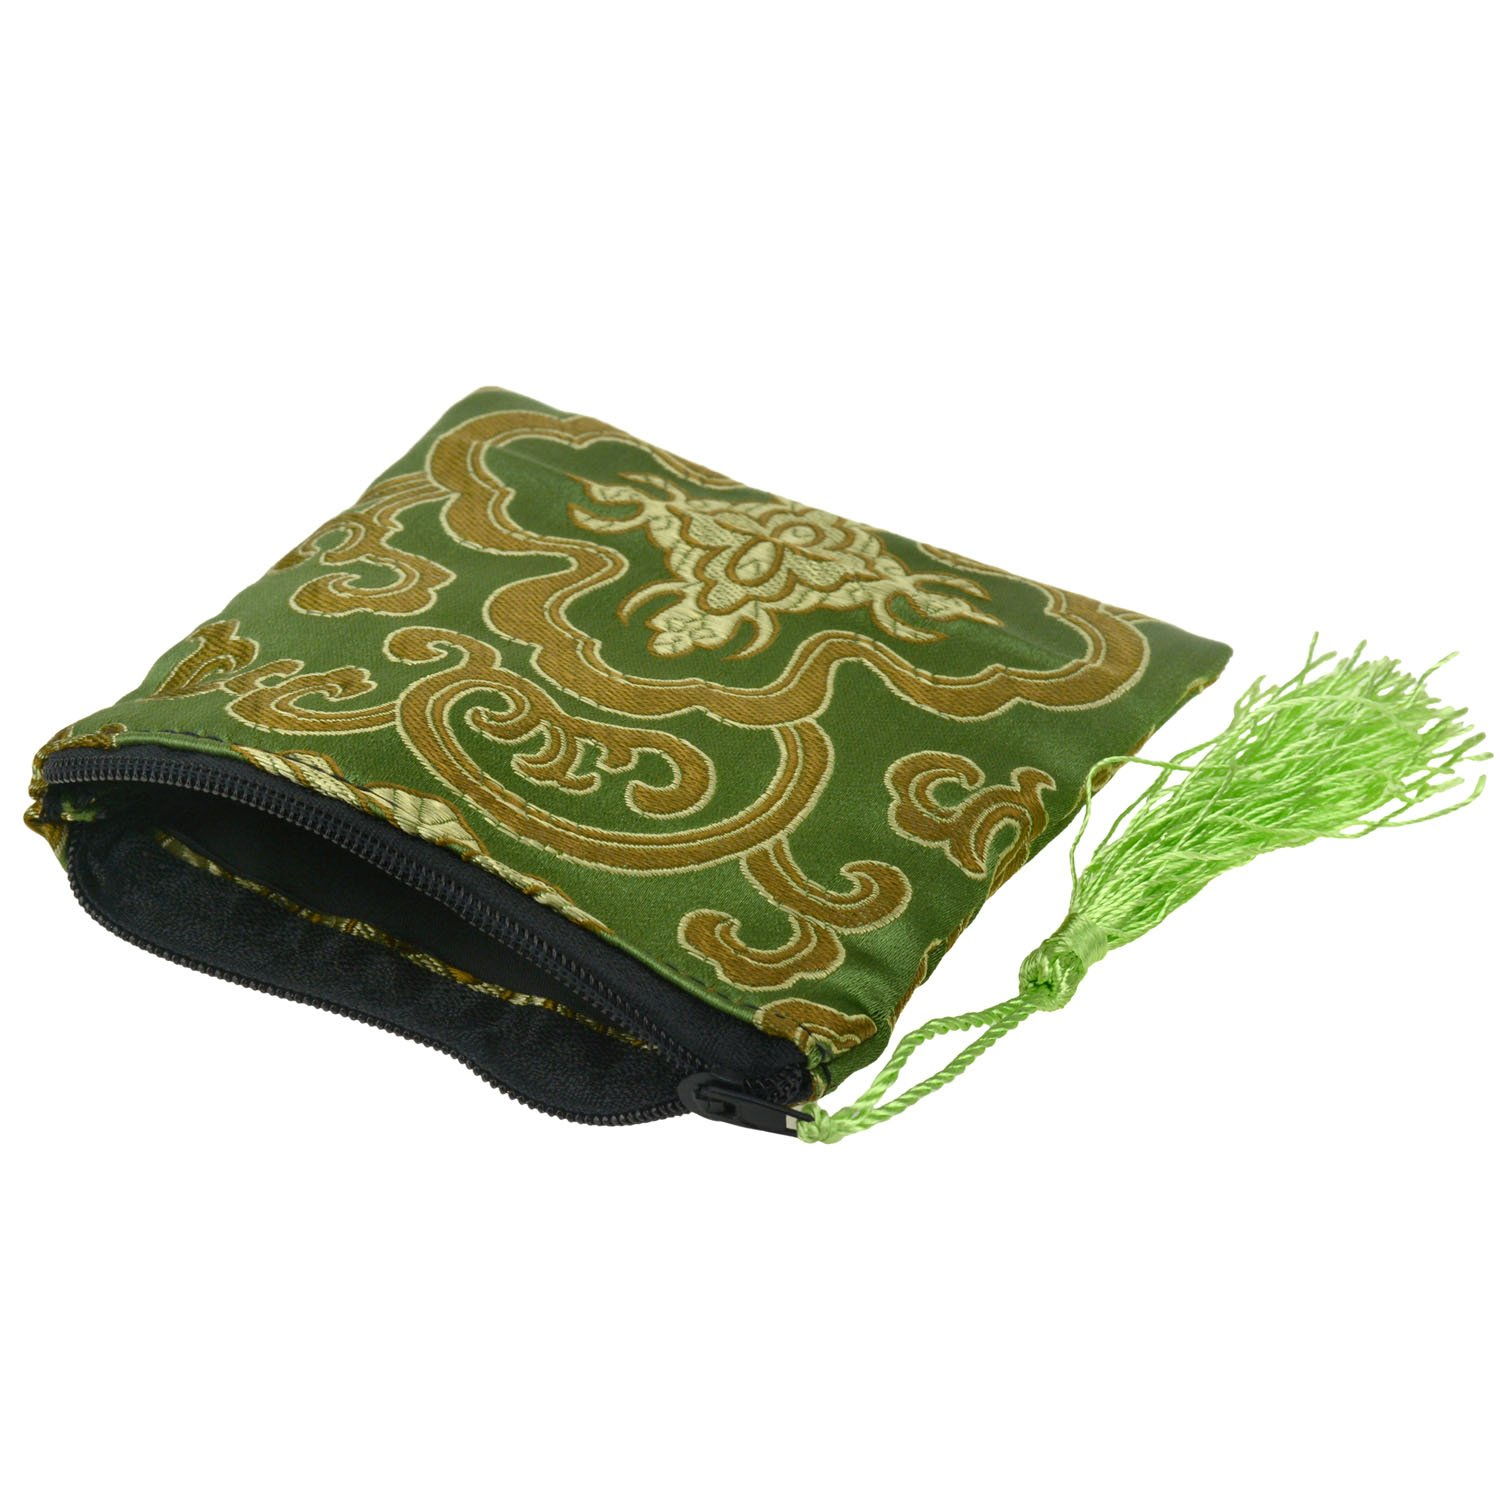 Rantanto Silk Brocade Coin Cash Purse Wallet Jewelry Pouch Bag With Tassel KimLee BGS0001